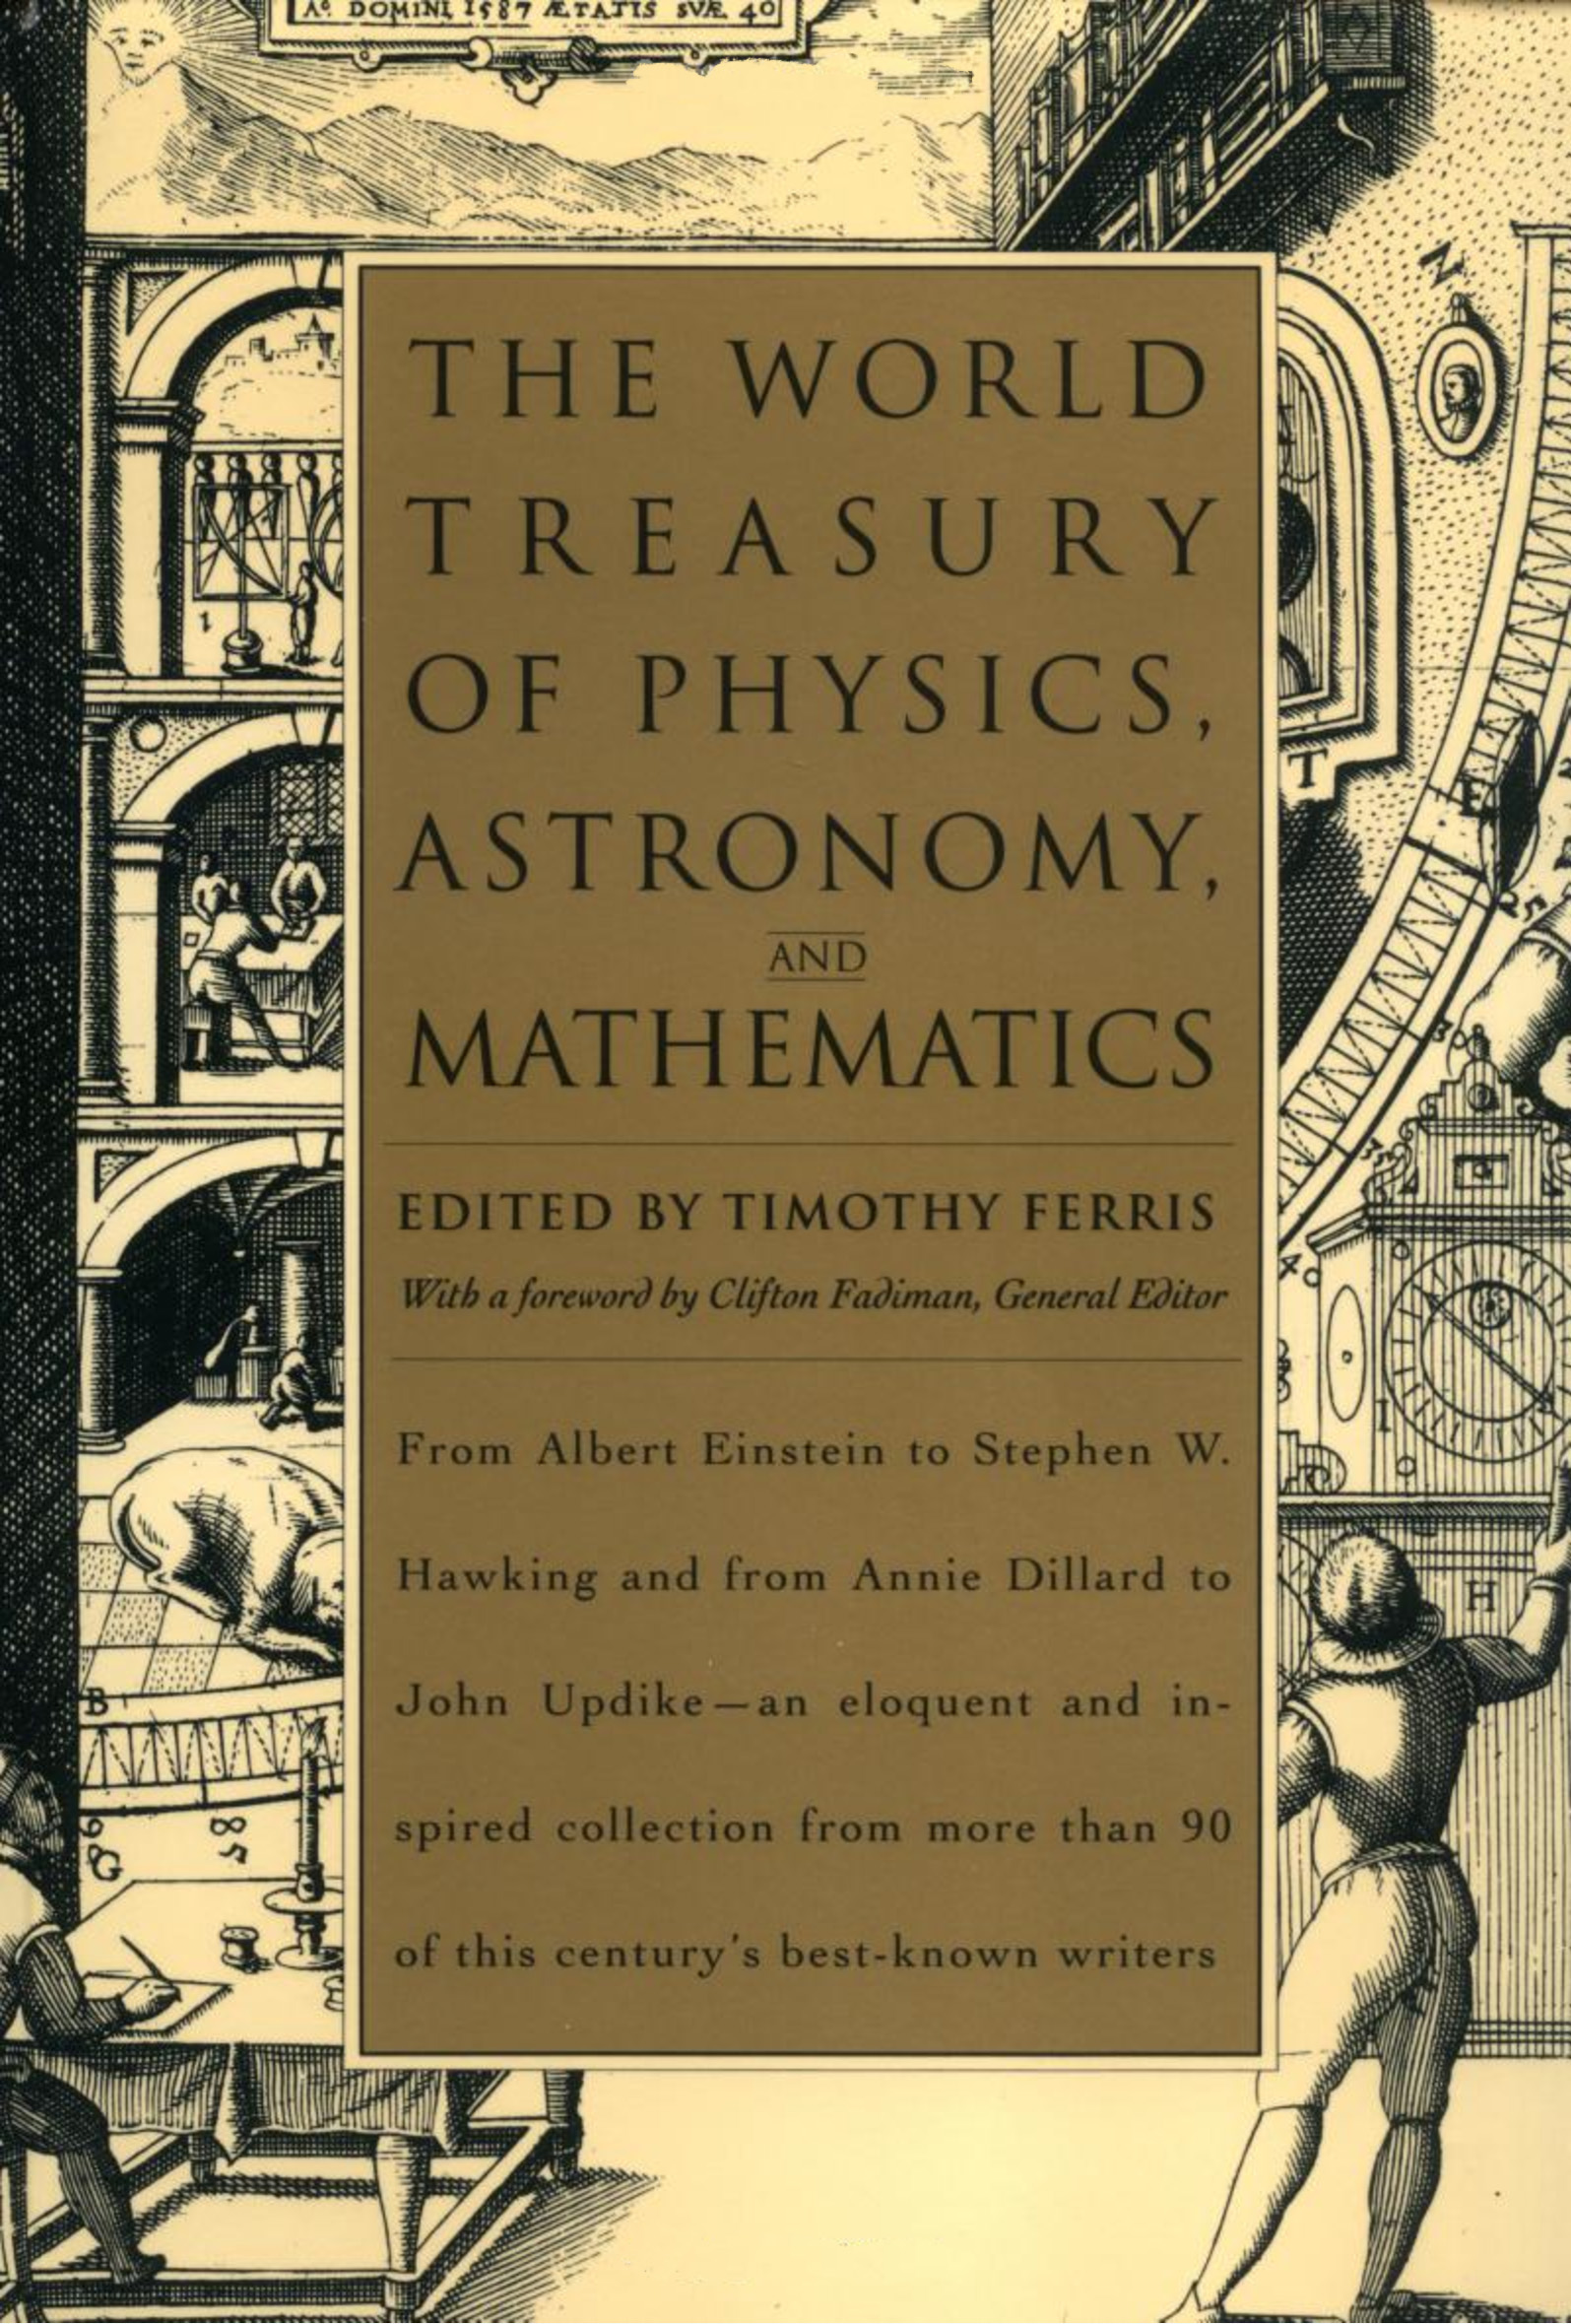 The World Treasury of Physics